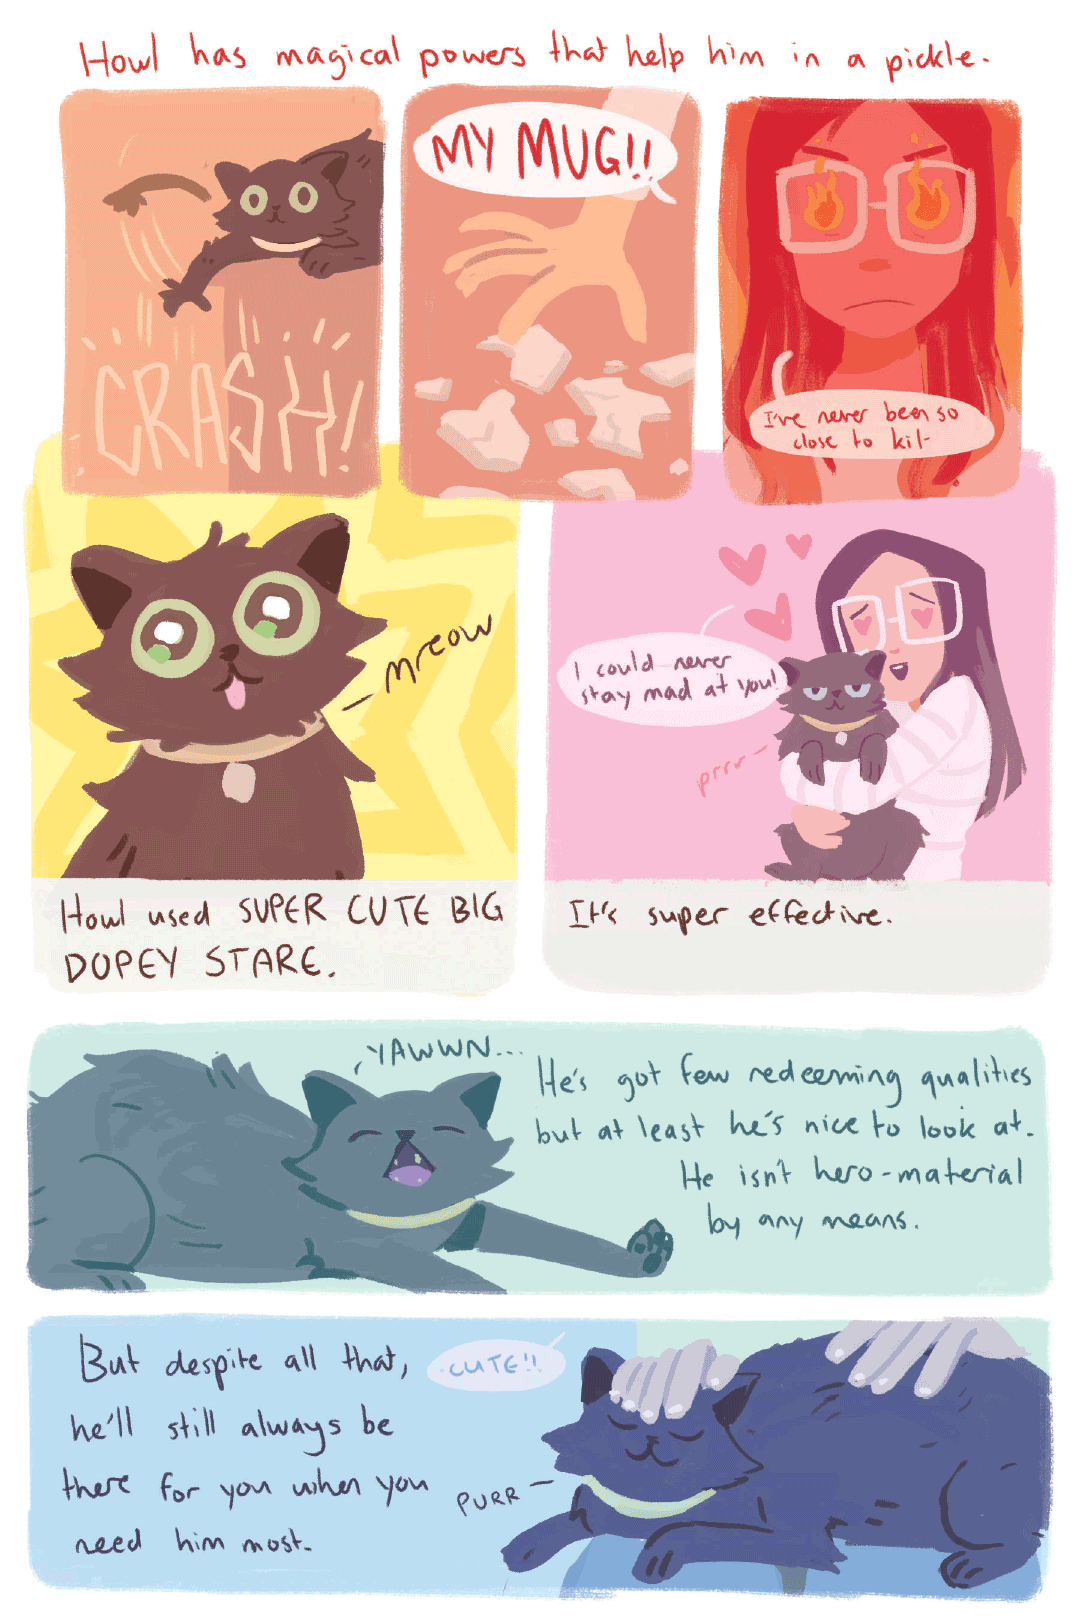 webcomic_wizardhowl3.png